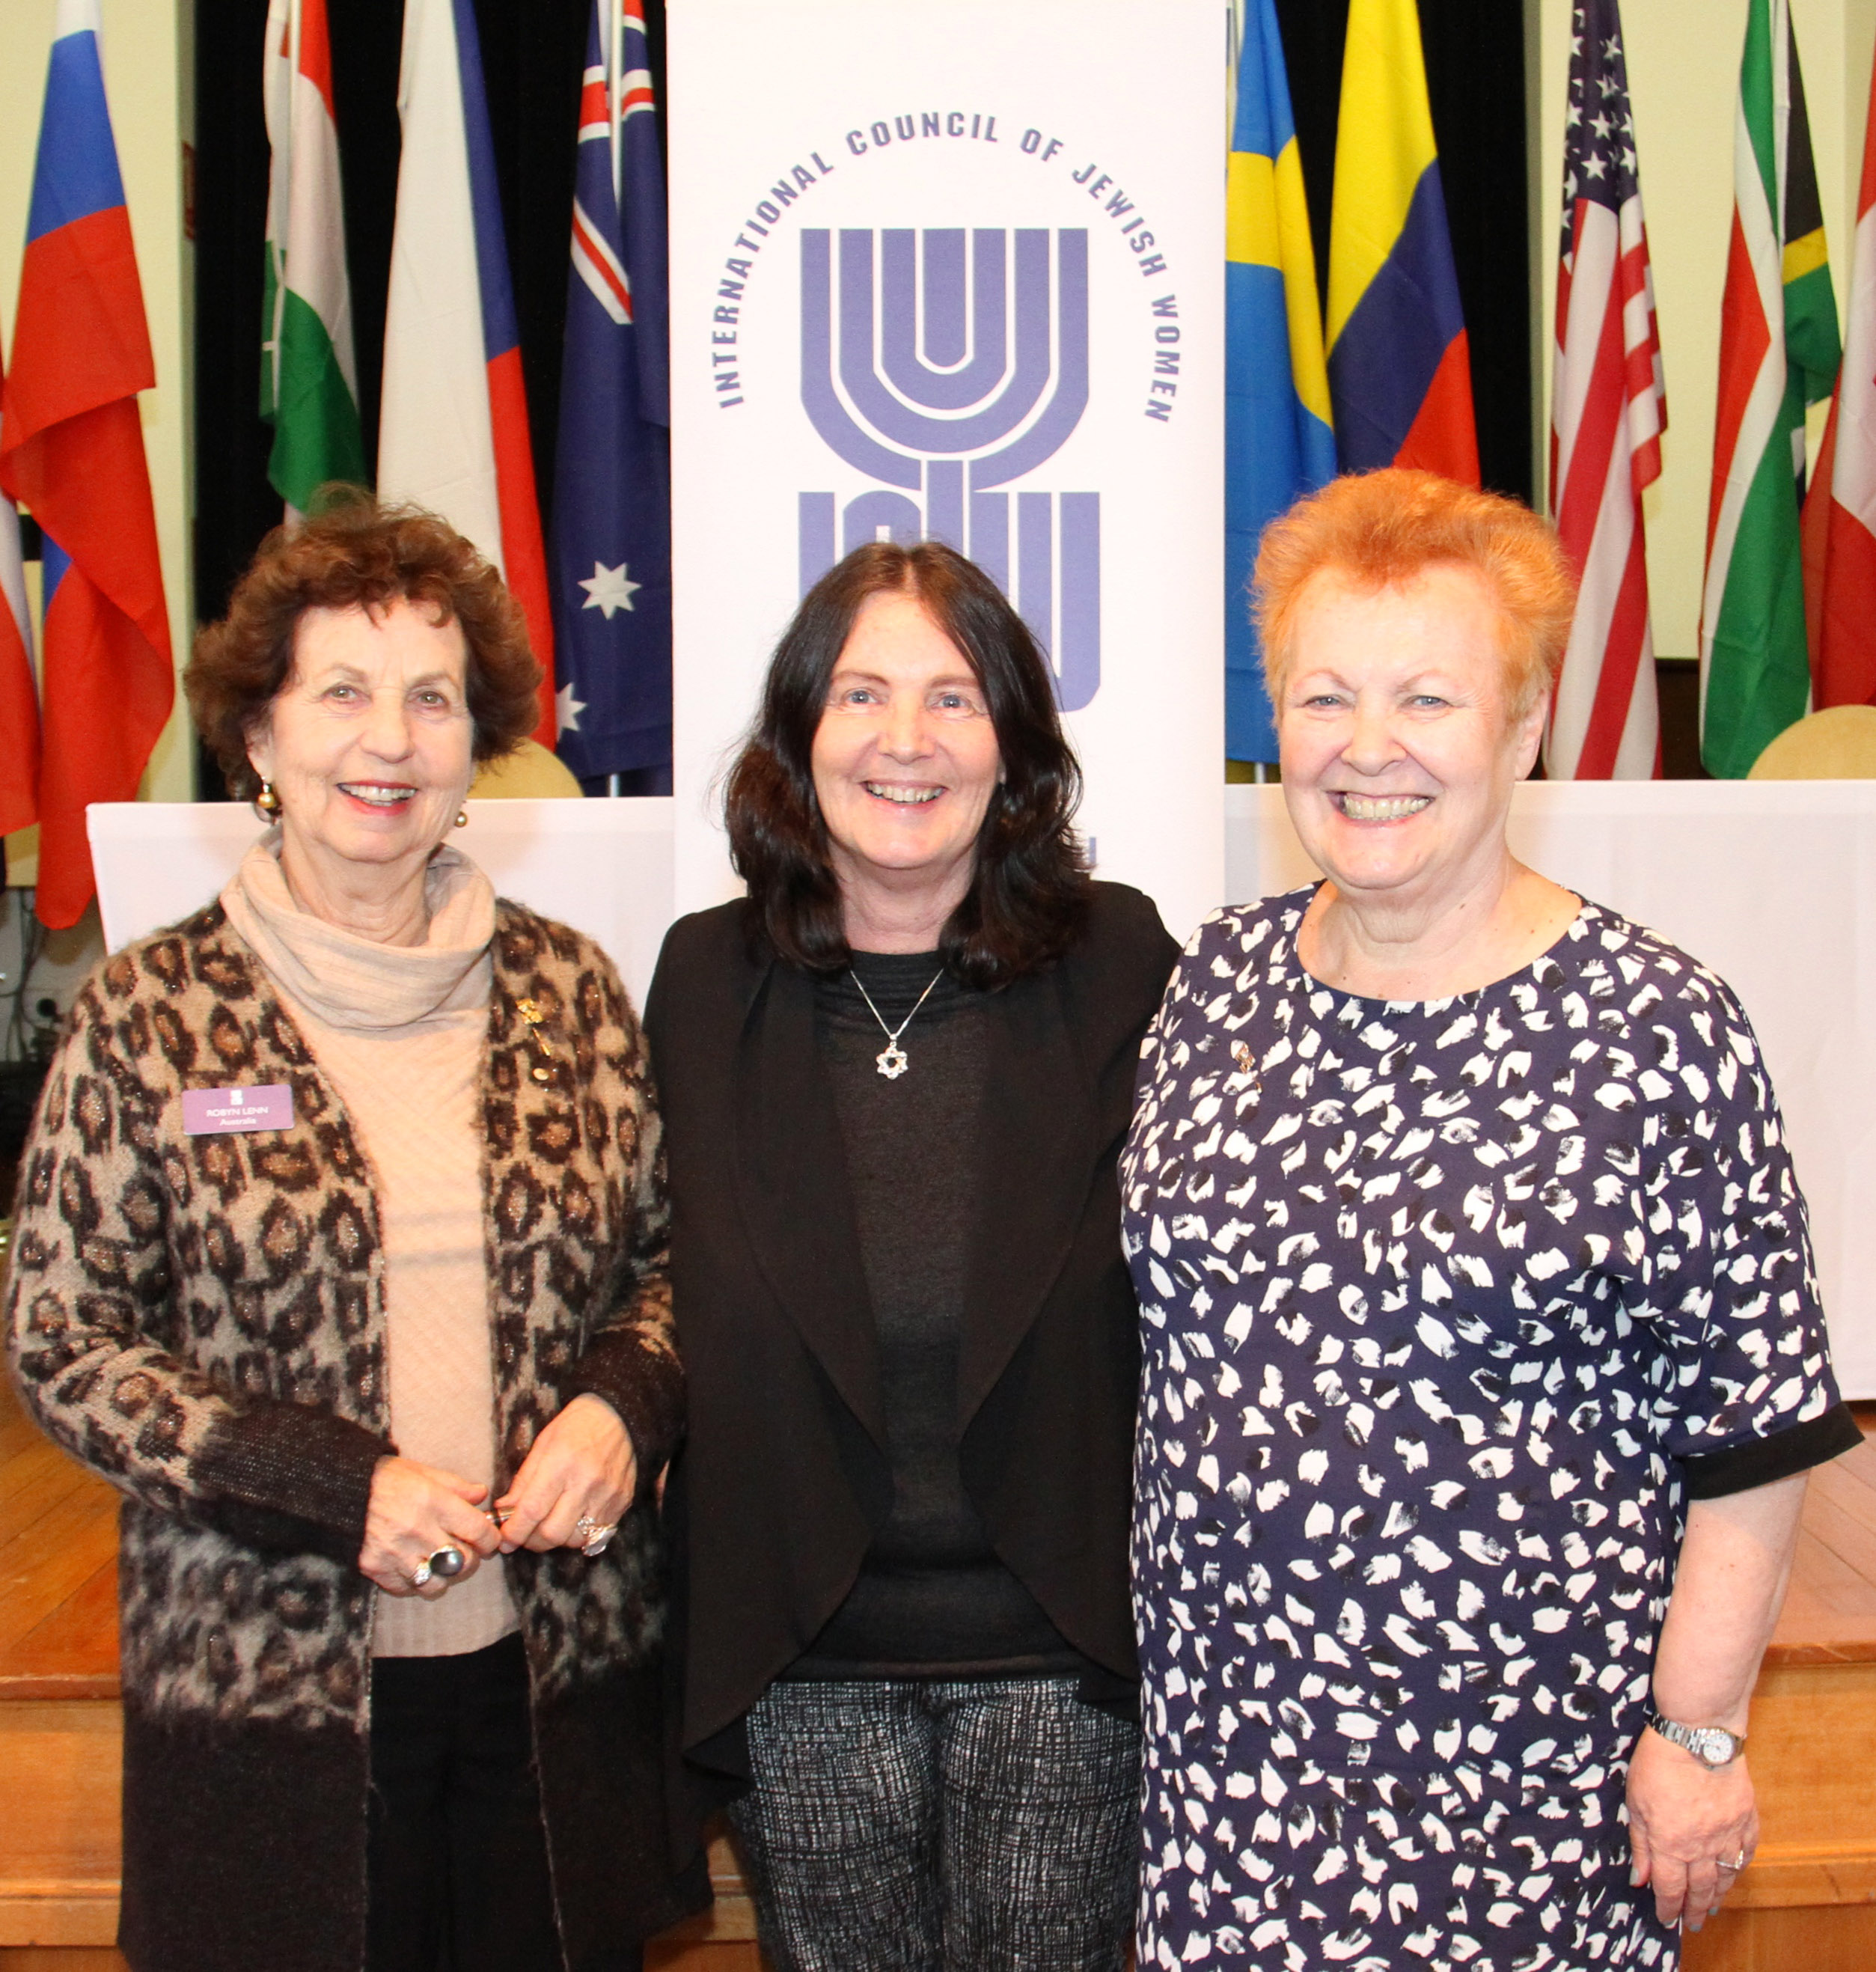 Left to right: Robyn Lenn (outgoing ICJW president), Julie Nathan, and Penelope Conway (incoming ICJW president).